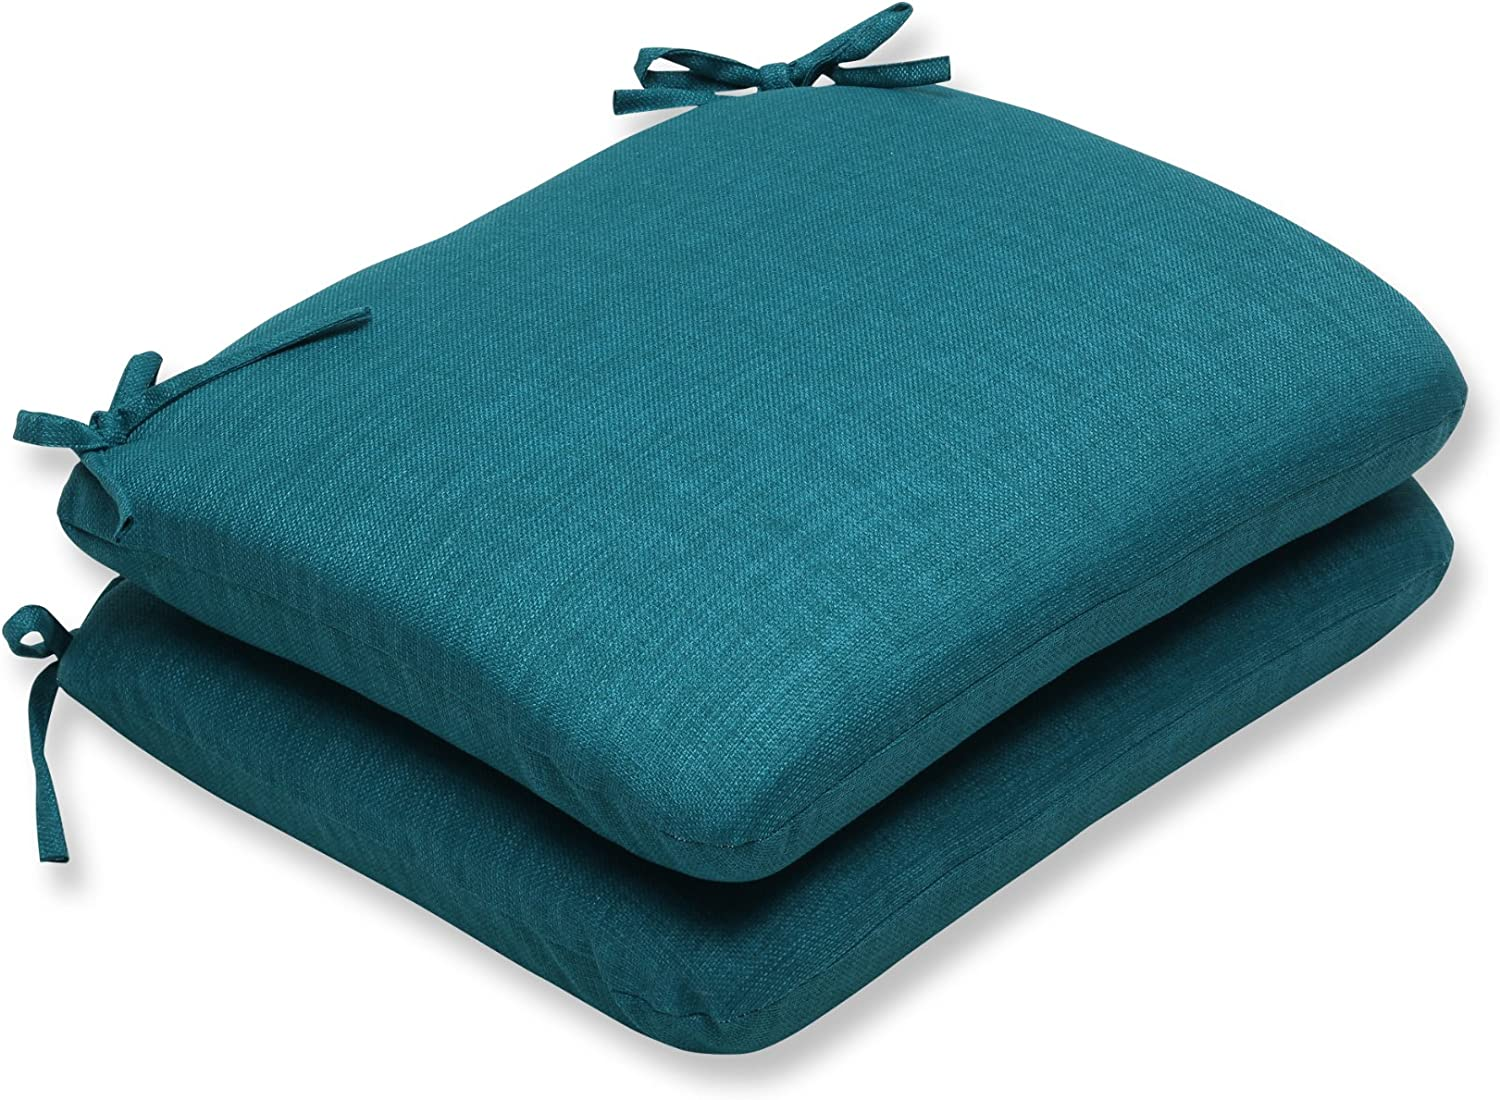 Pillow Perfect Outdoor Rave Teal Rounded Corners Seat Cushion, Set of 2